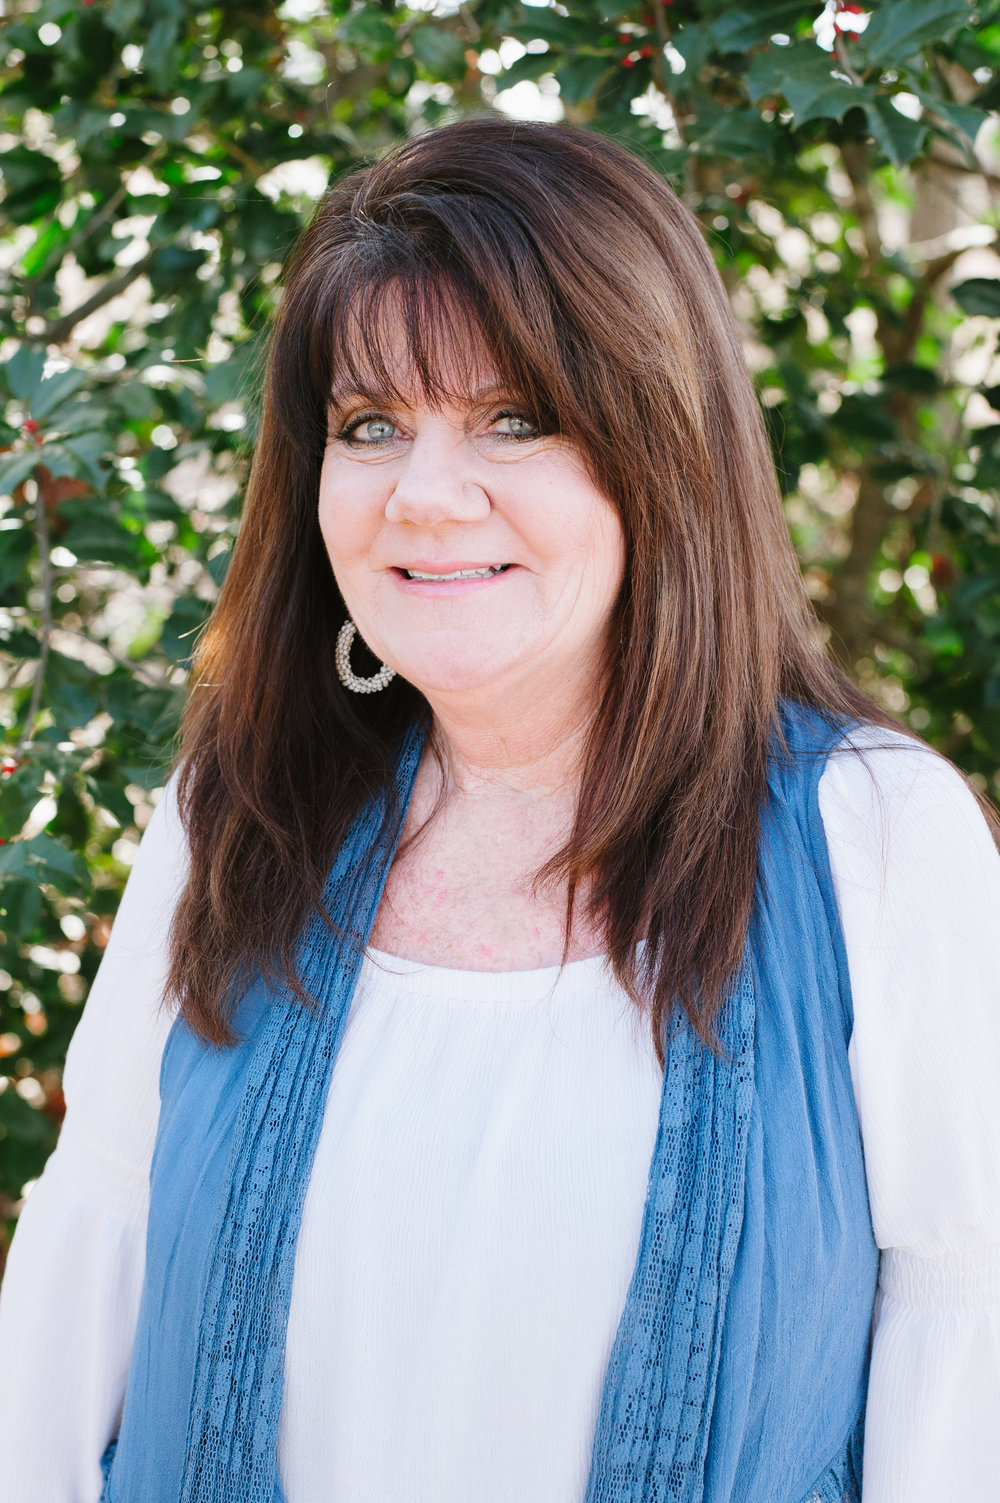 CATHI AUSTIN Sales Coordinator Cathi works directly with our buyers from contract to closing making sure that all of their questions and concerns are addressed. She communicates with the entire team to help make every build a smooth transaction for our customers.